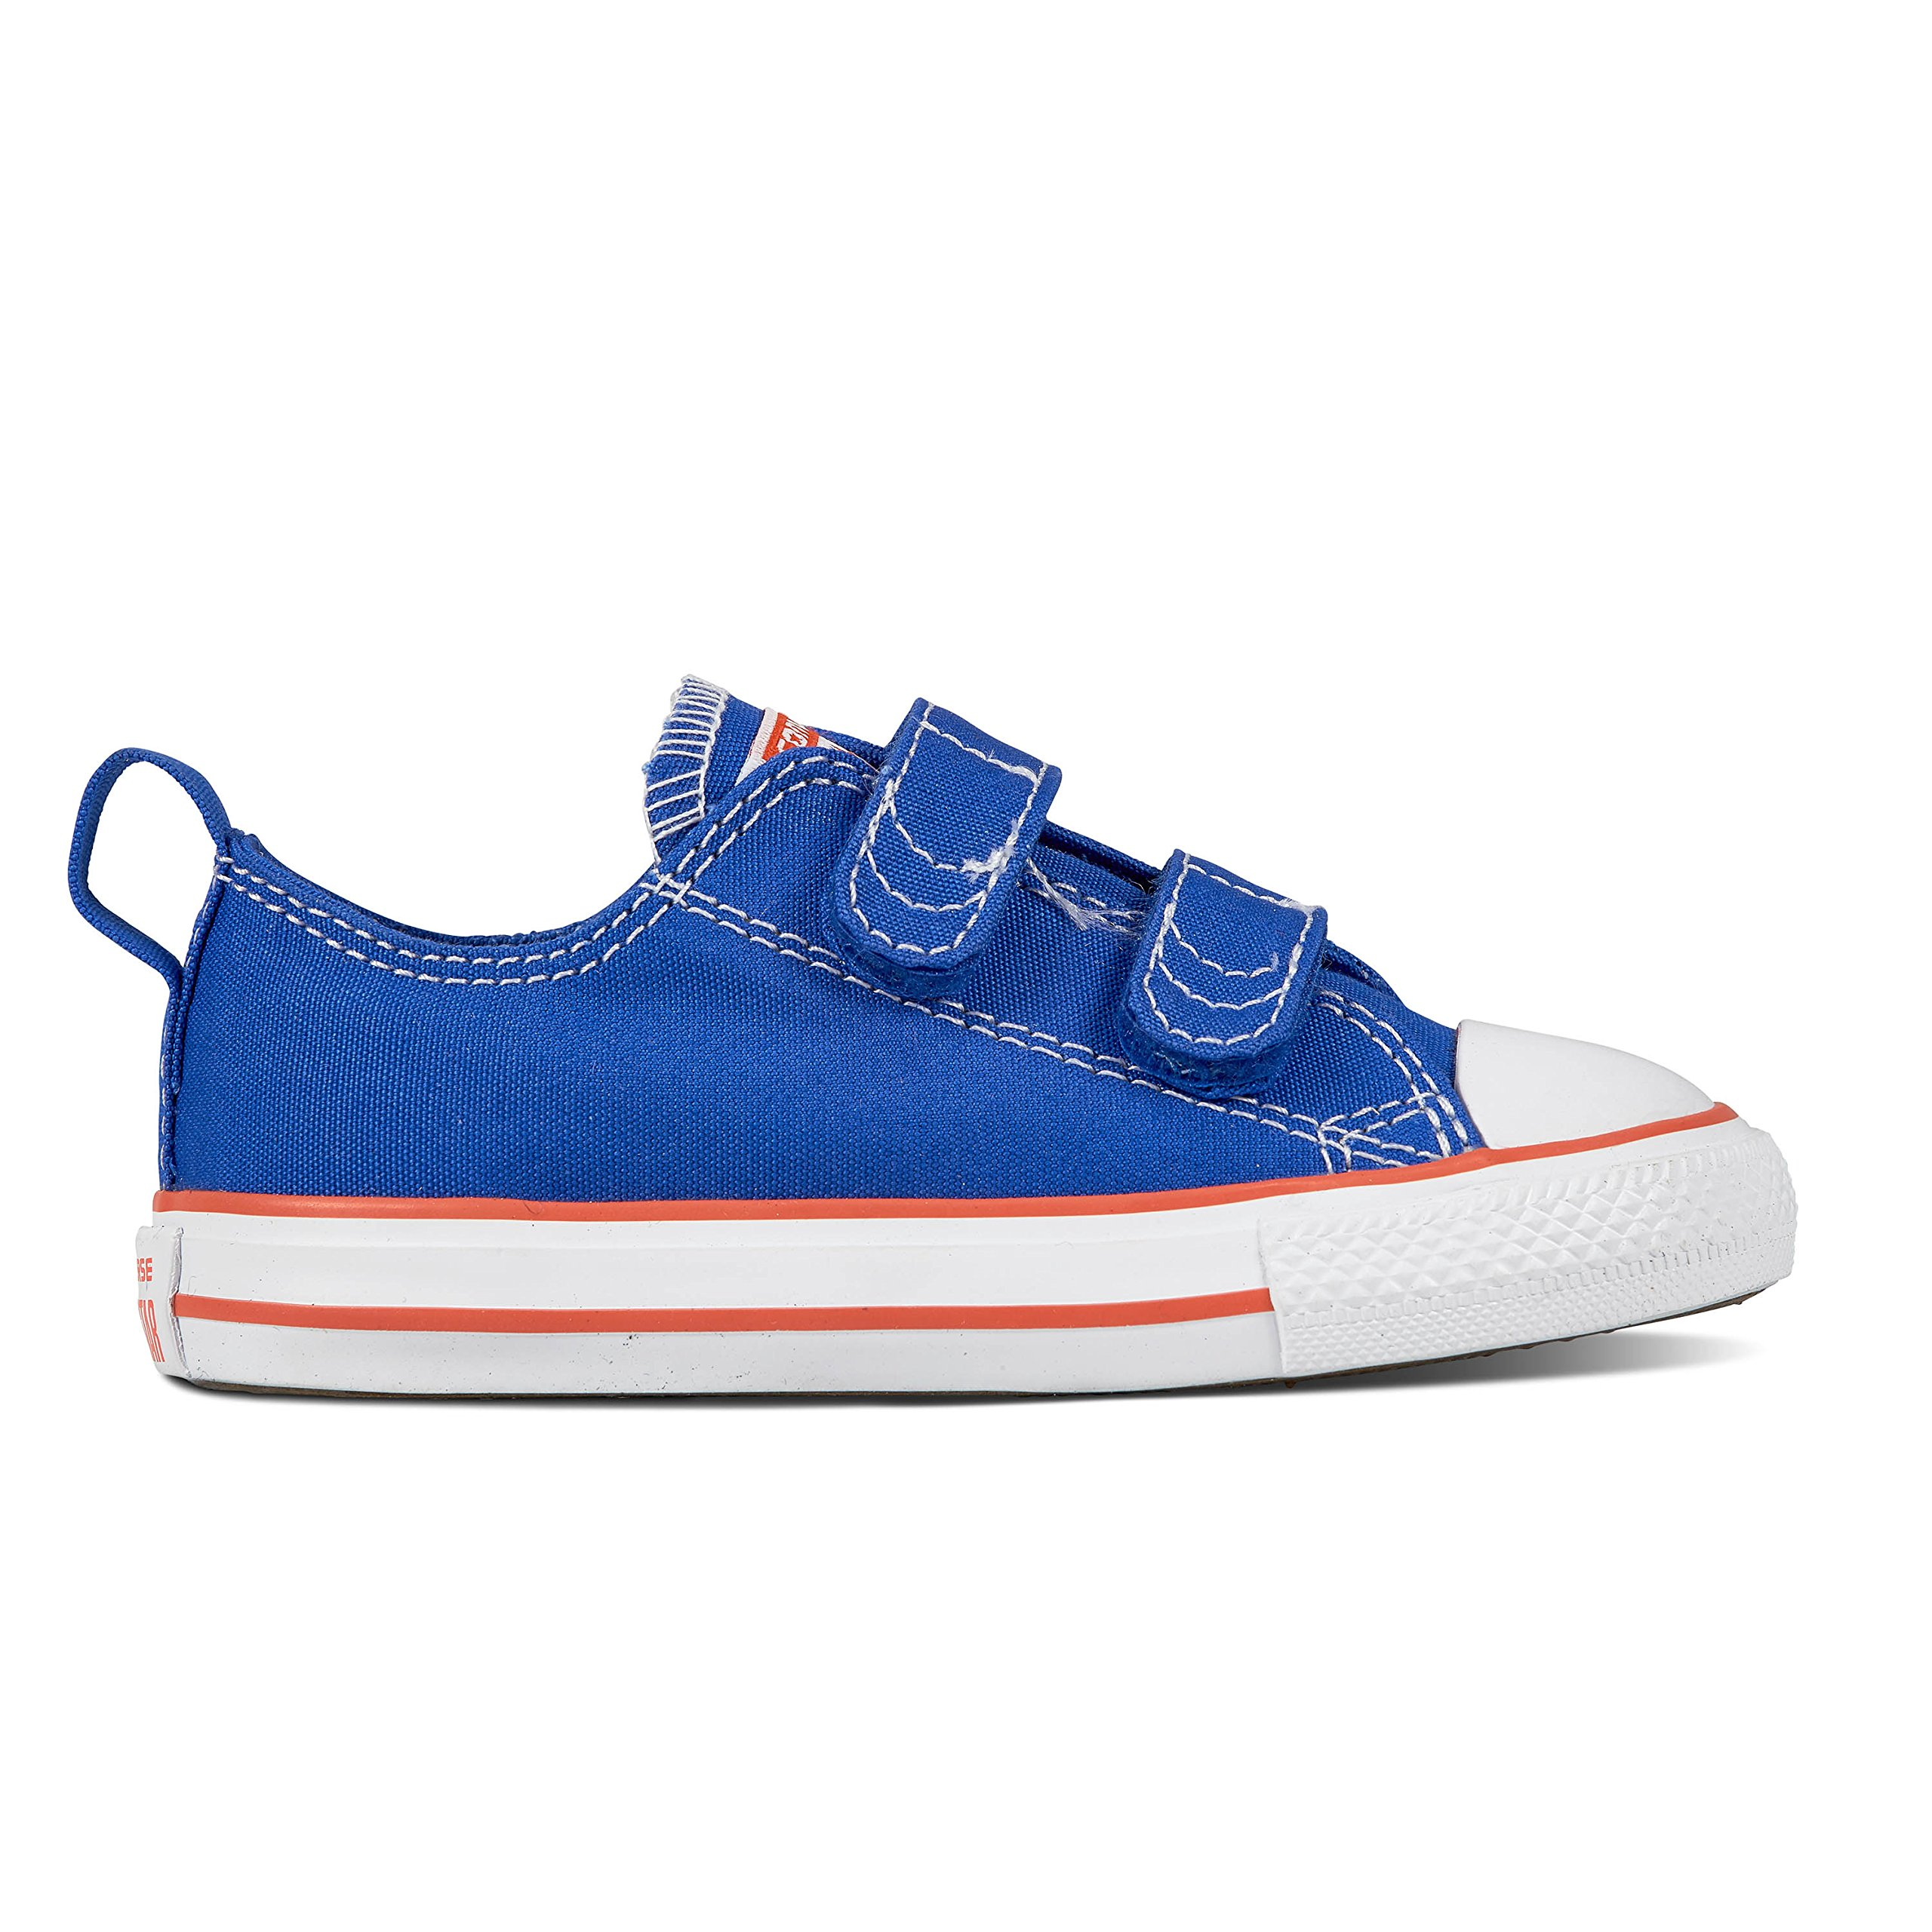 fe331ded431d64 Galleon - Converse Kids  Chuck Taylor All Star 2V Seasonal Low Top Sneaker  Hyper Royal Bright Poppy White 6 M US Toddler